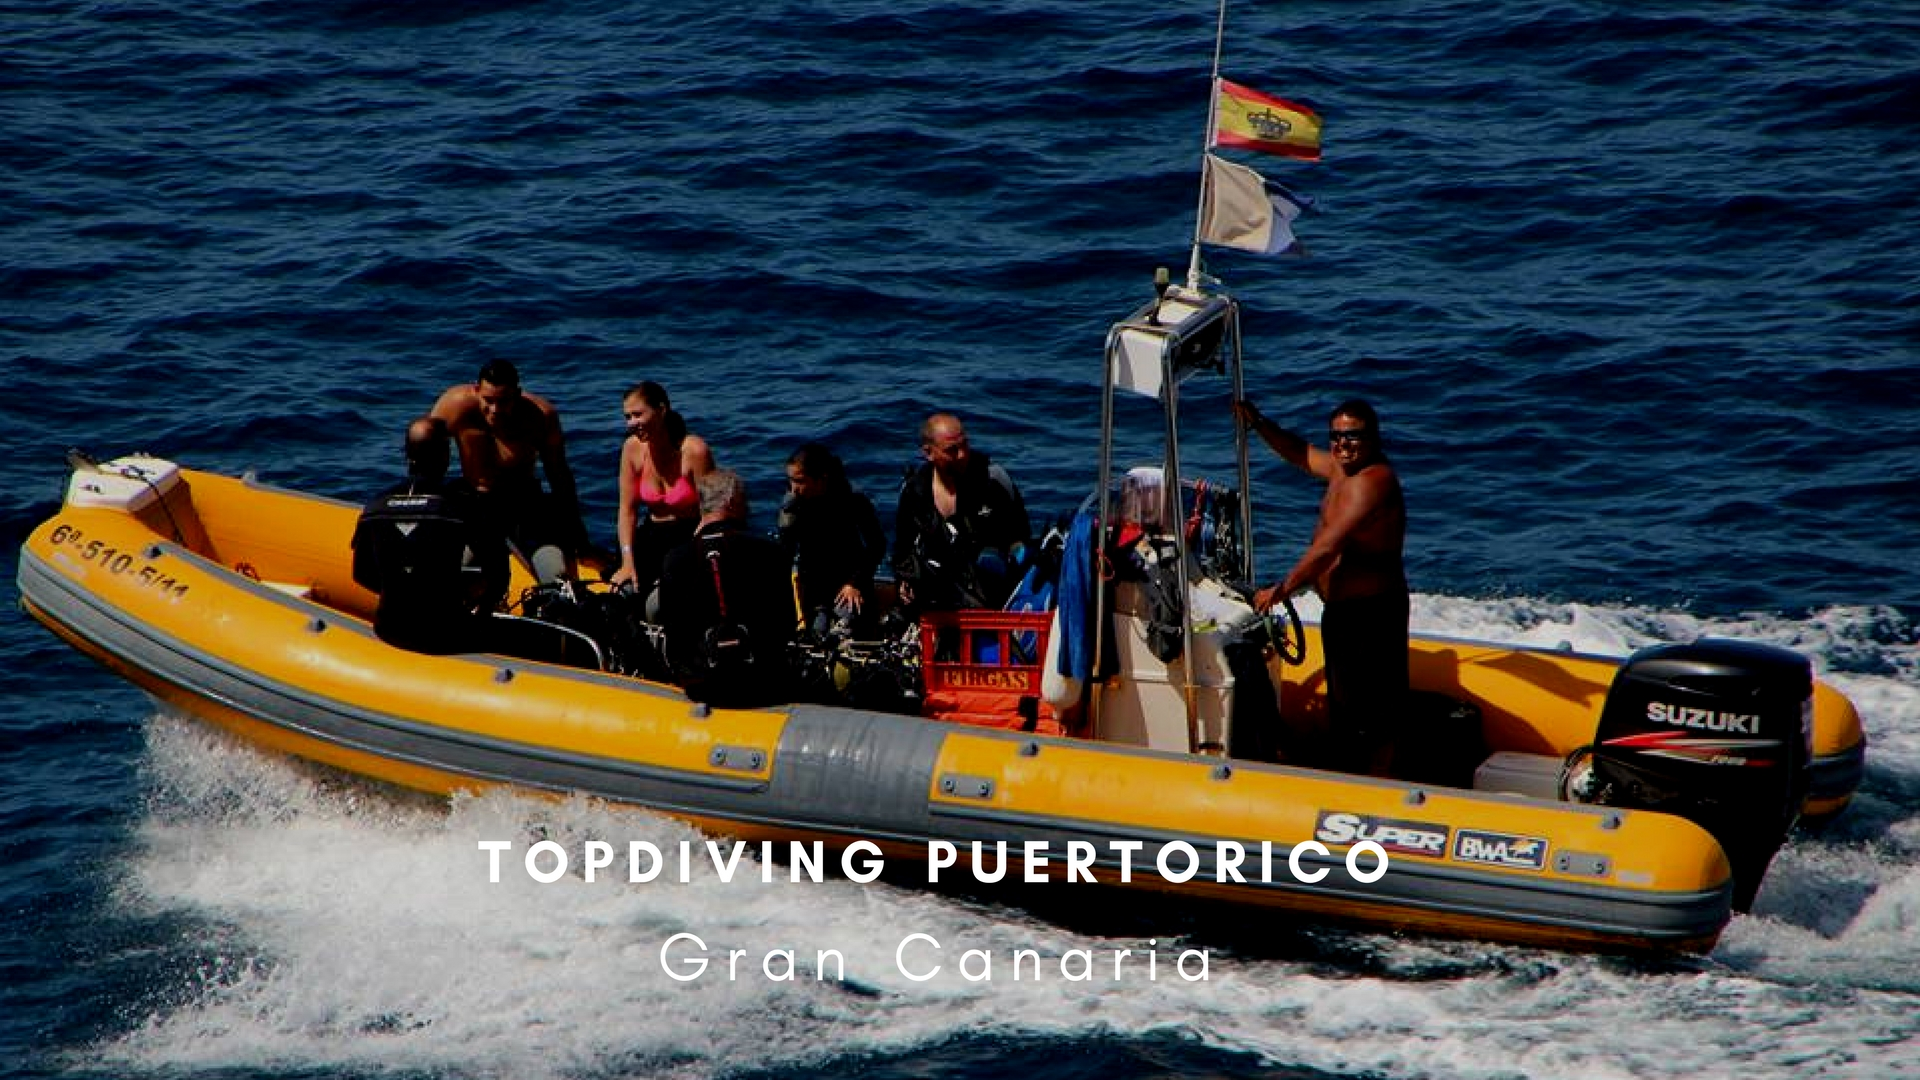 Top Diving Puerto Rico